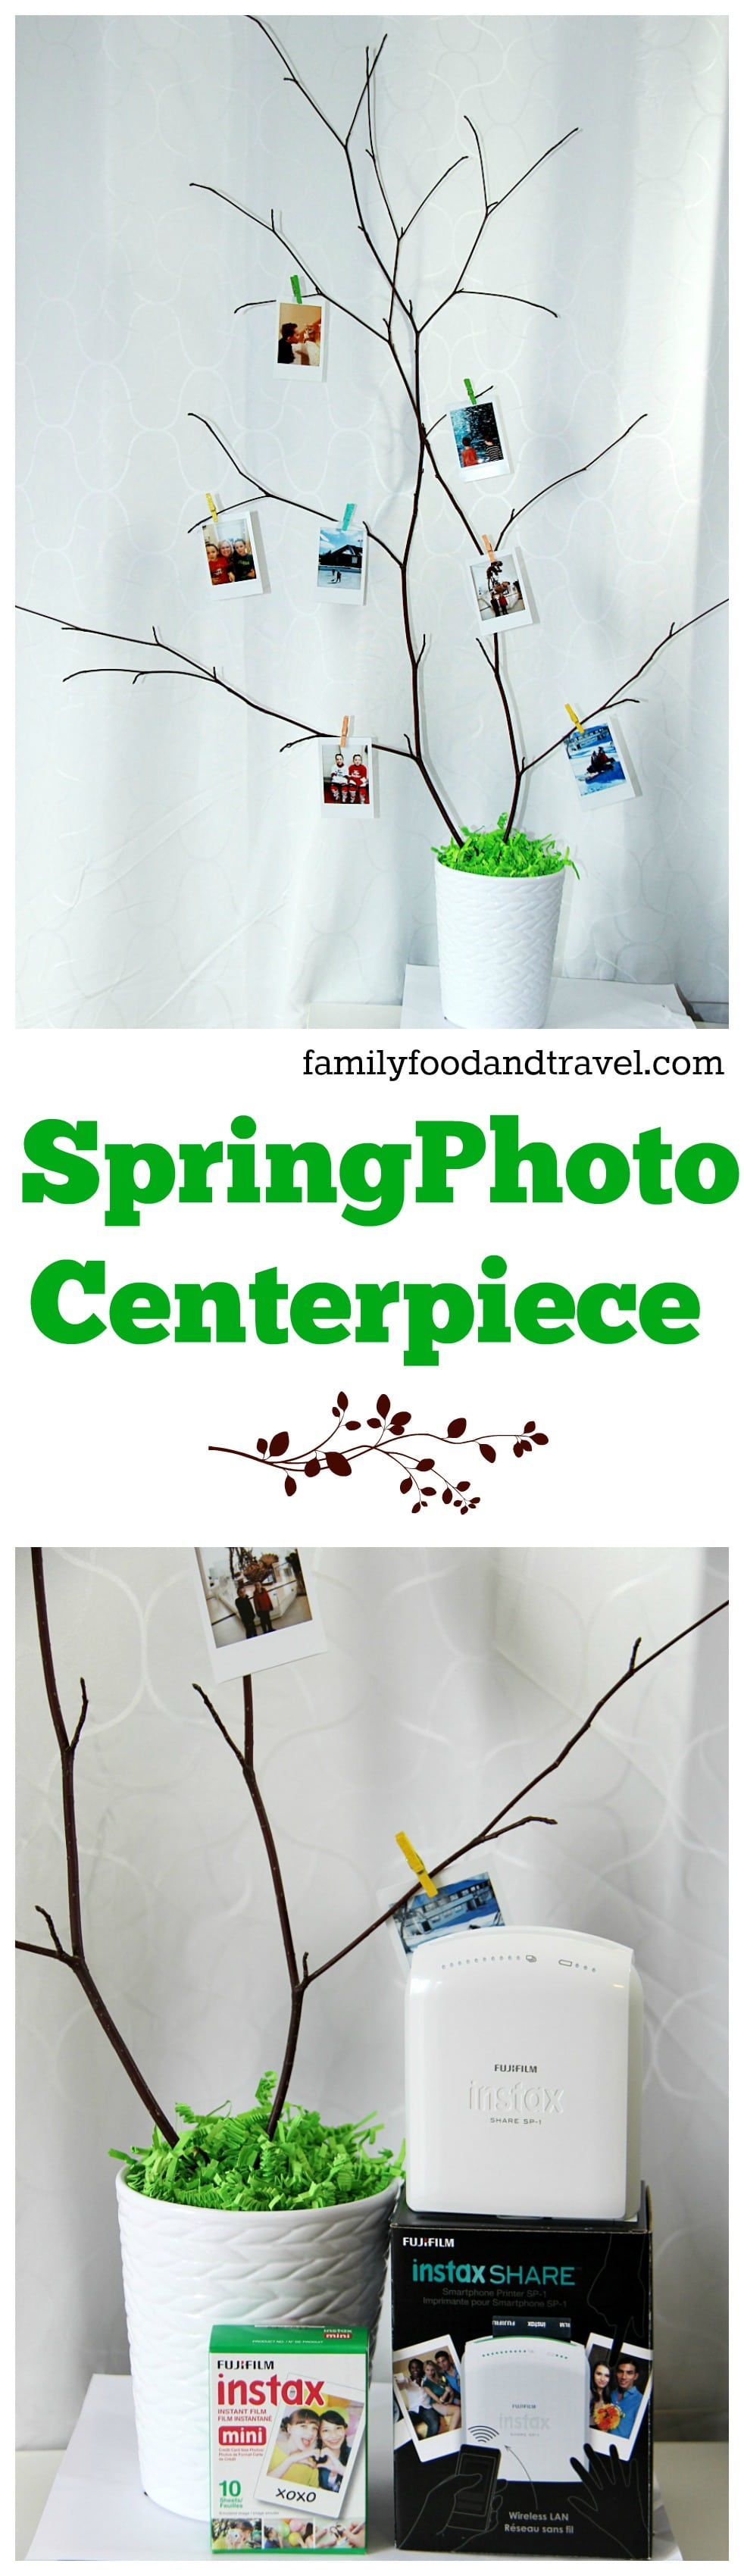 Spring Photo Centerpiece